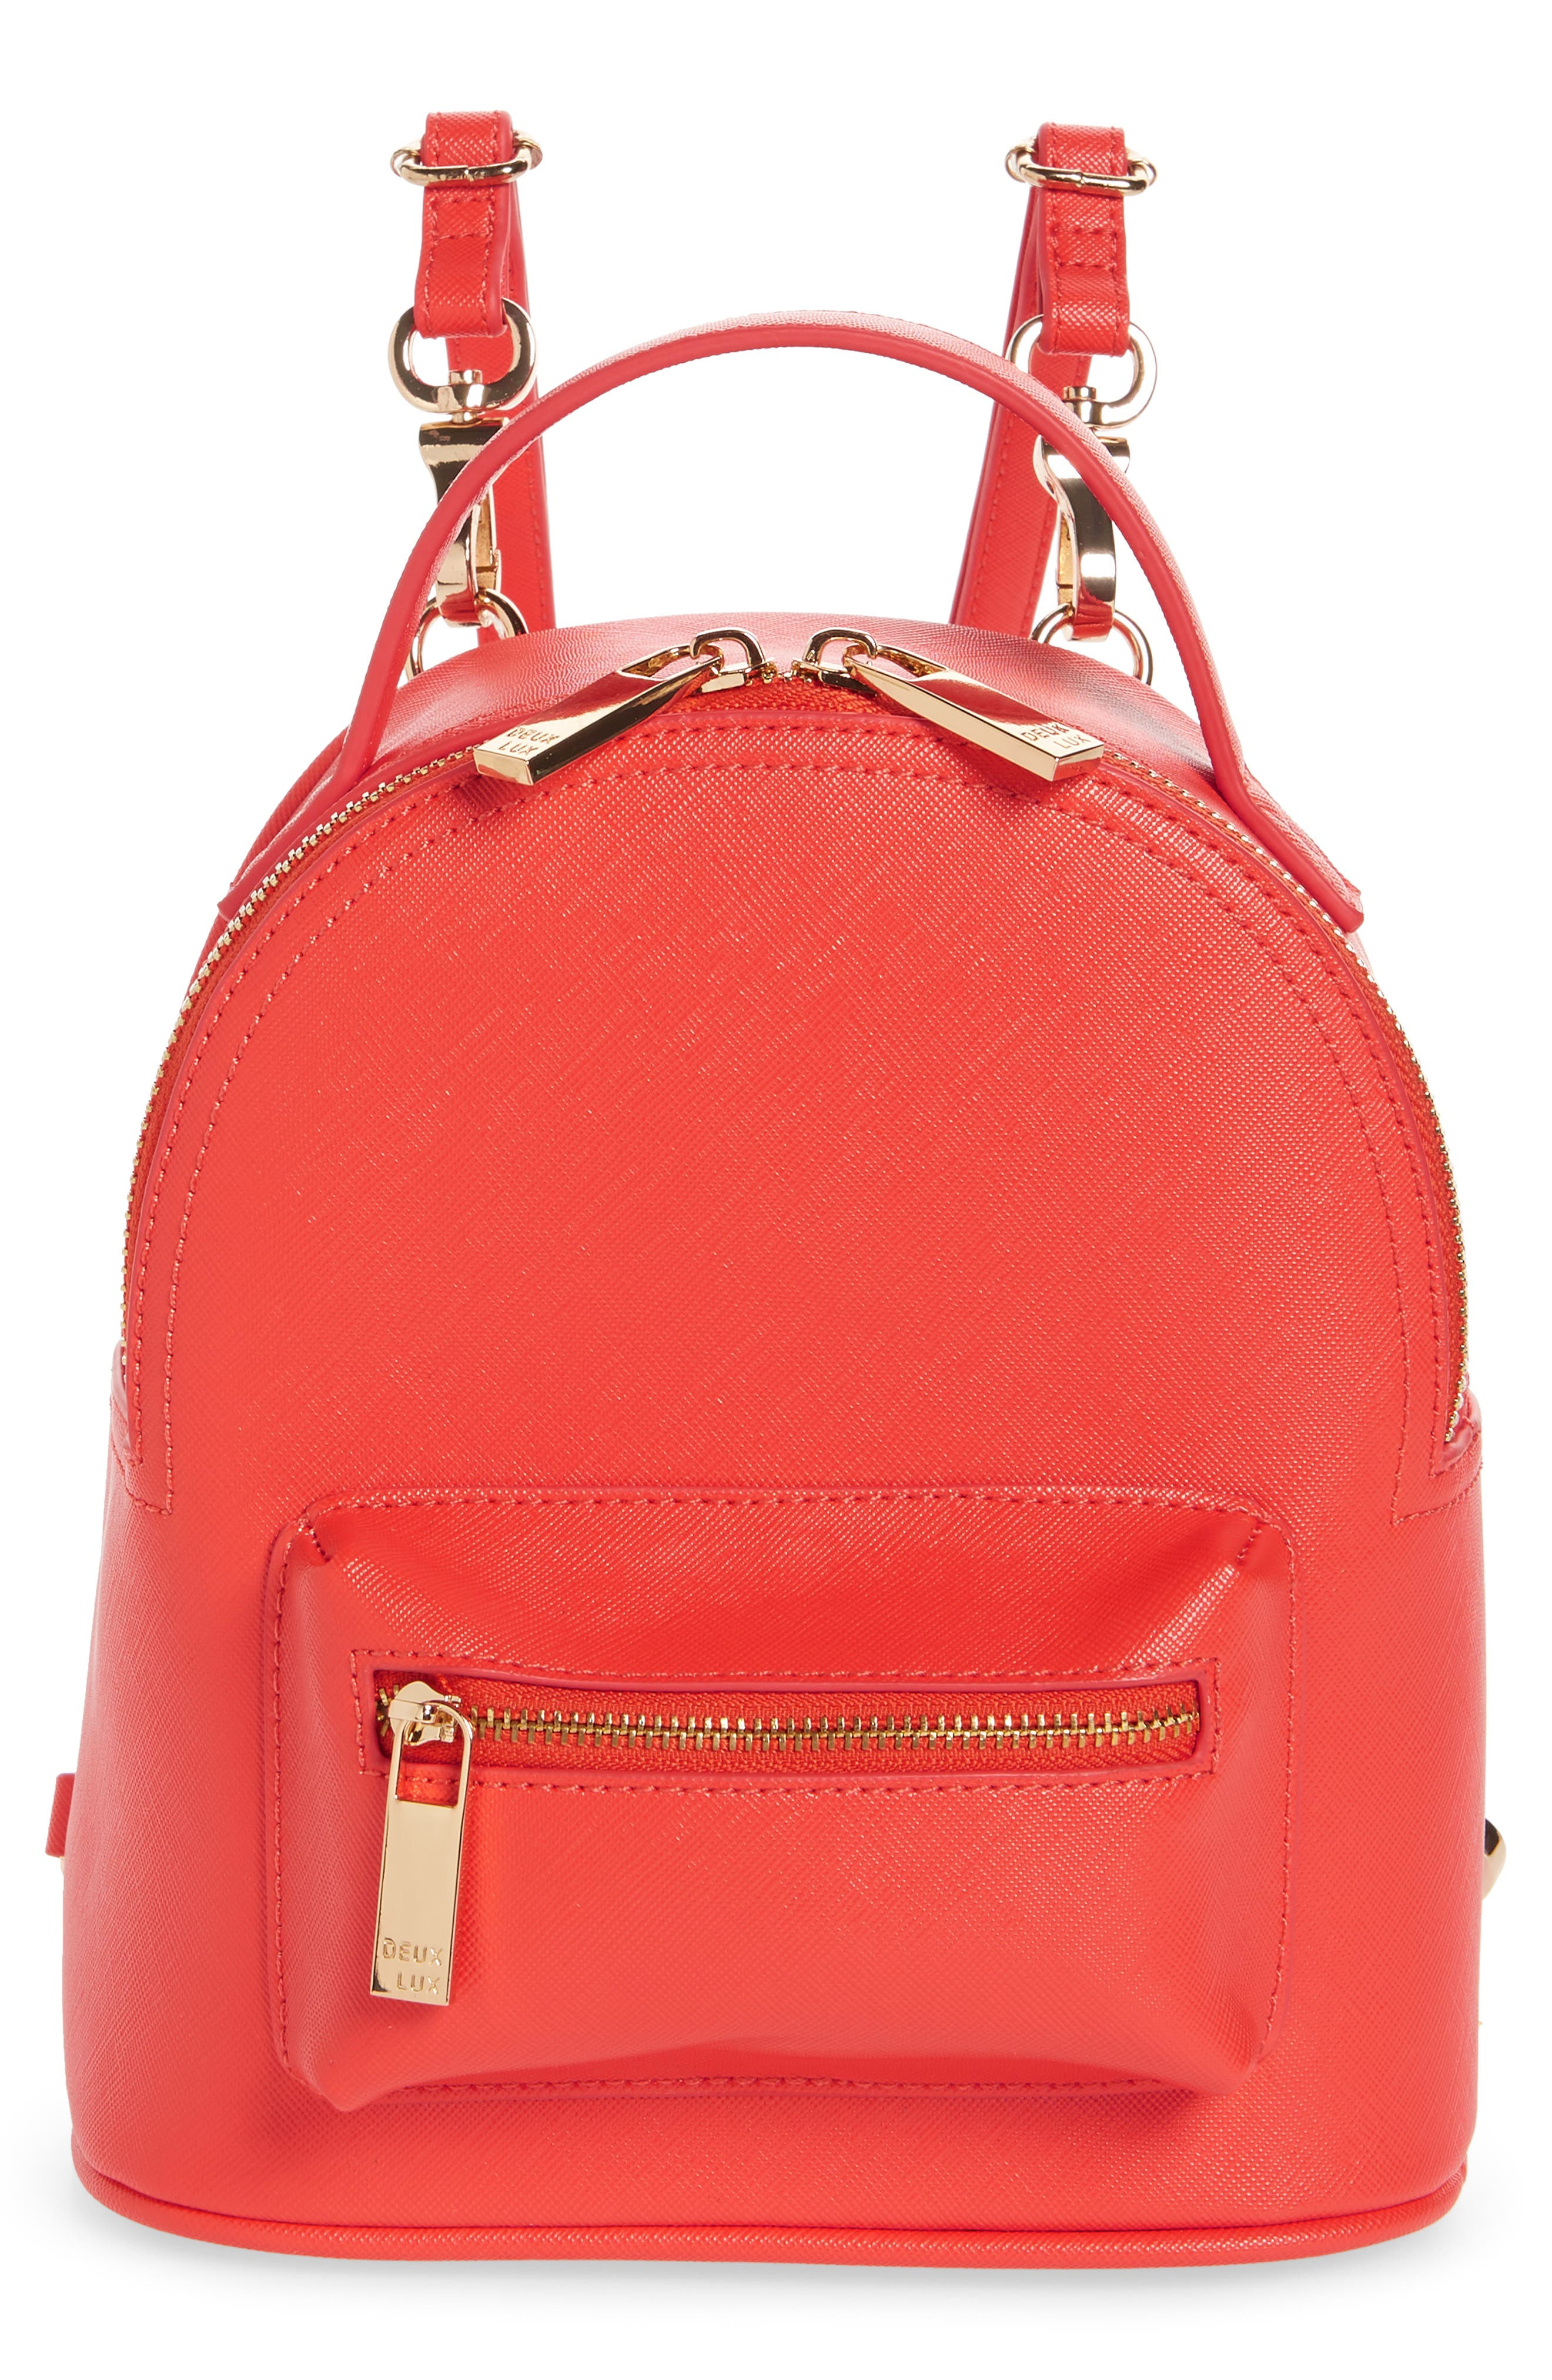 Annabelle Mini Faux Leather Backpack,                             Main thumbnail 1, color,                             Poppy